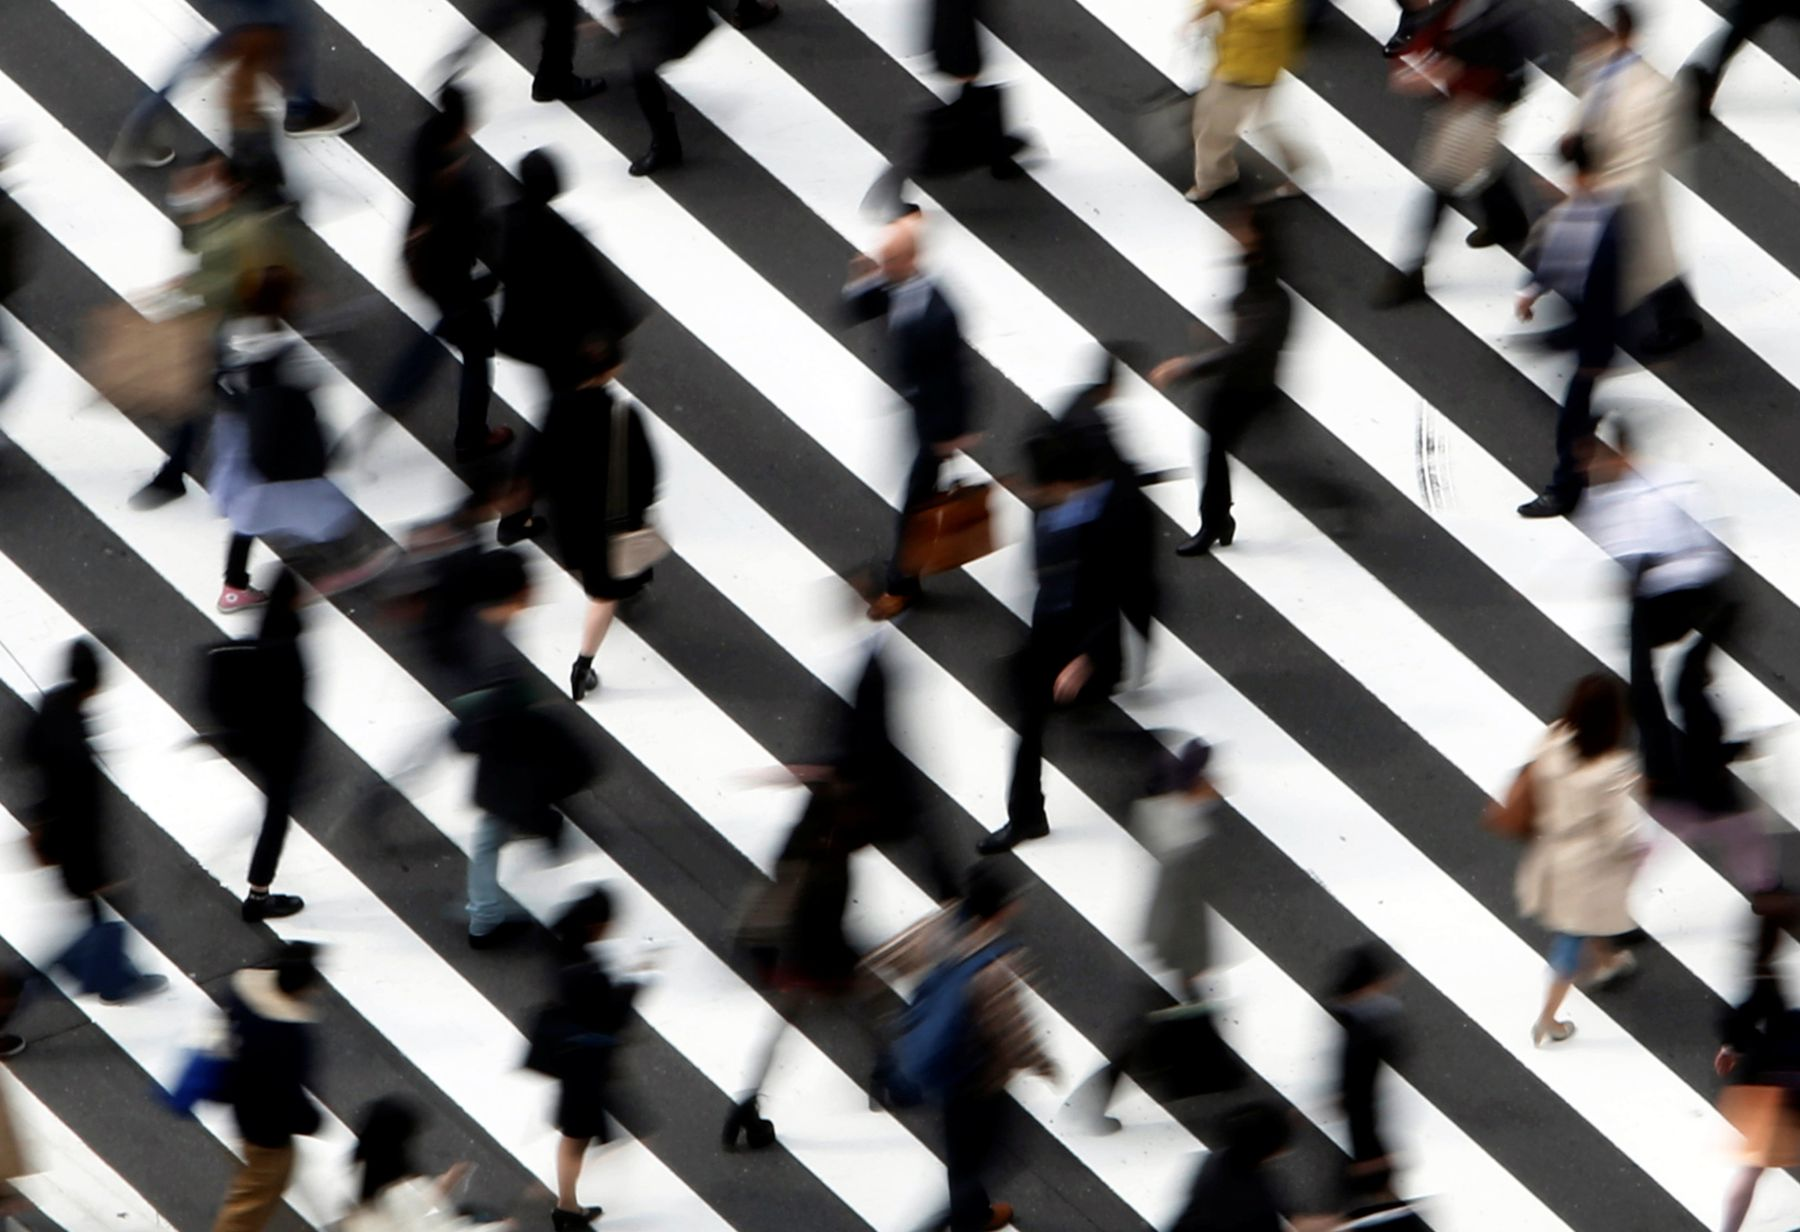 FILE PHOTO: People cross a street in Tokyo